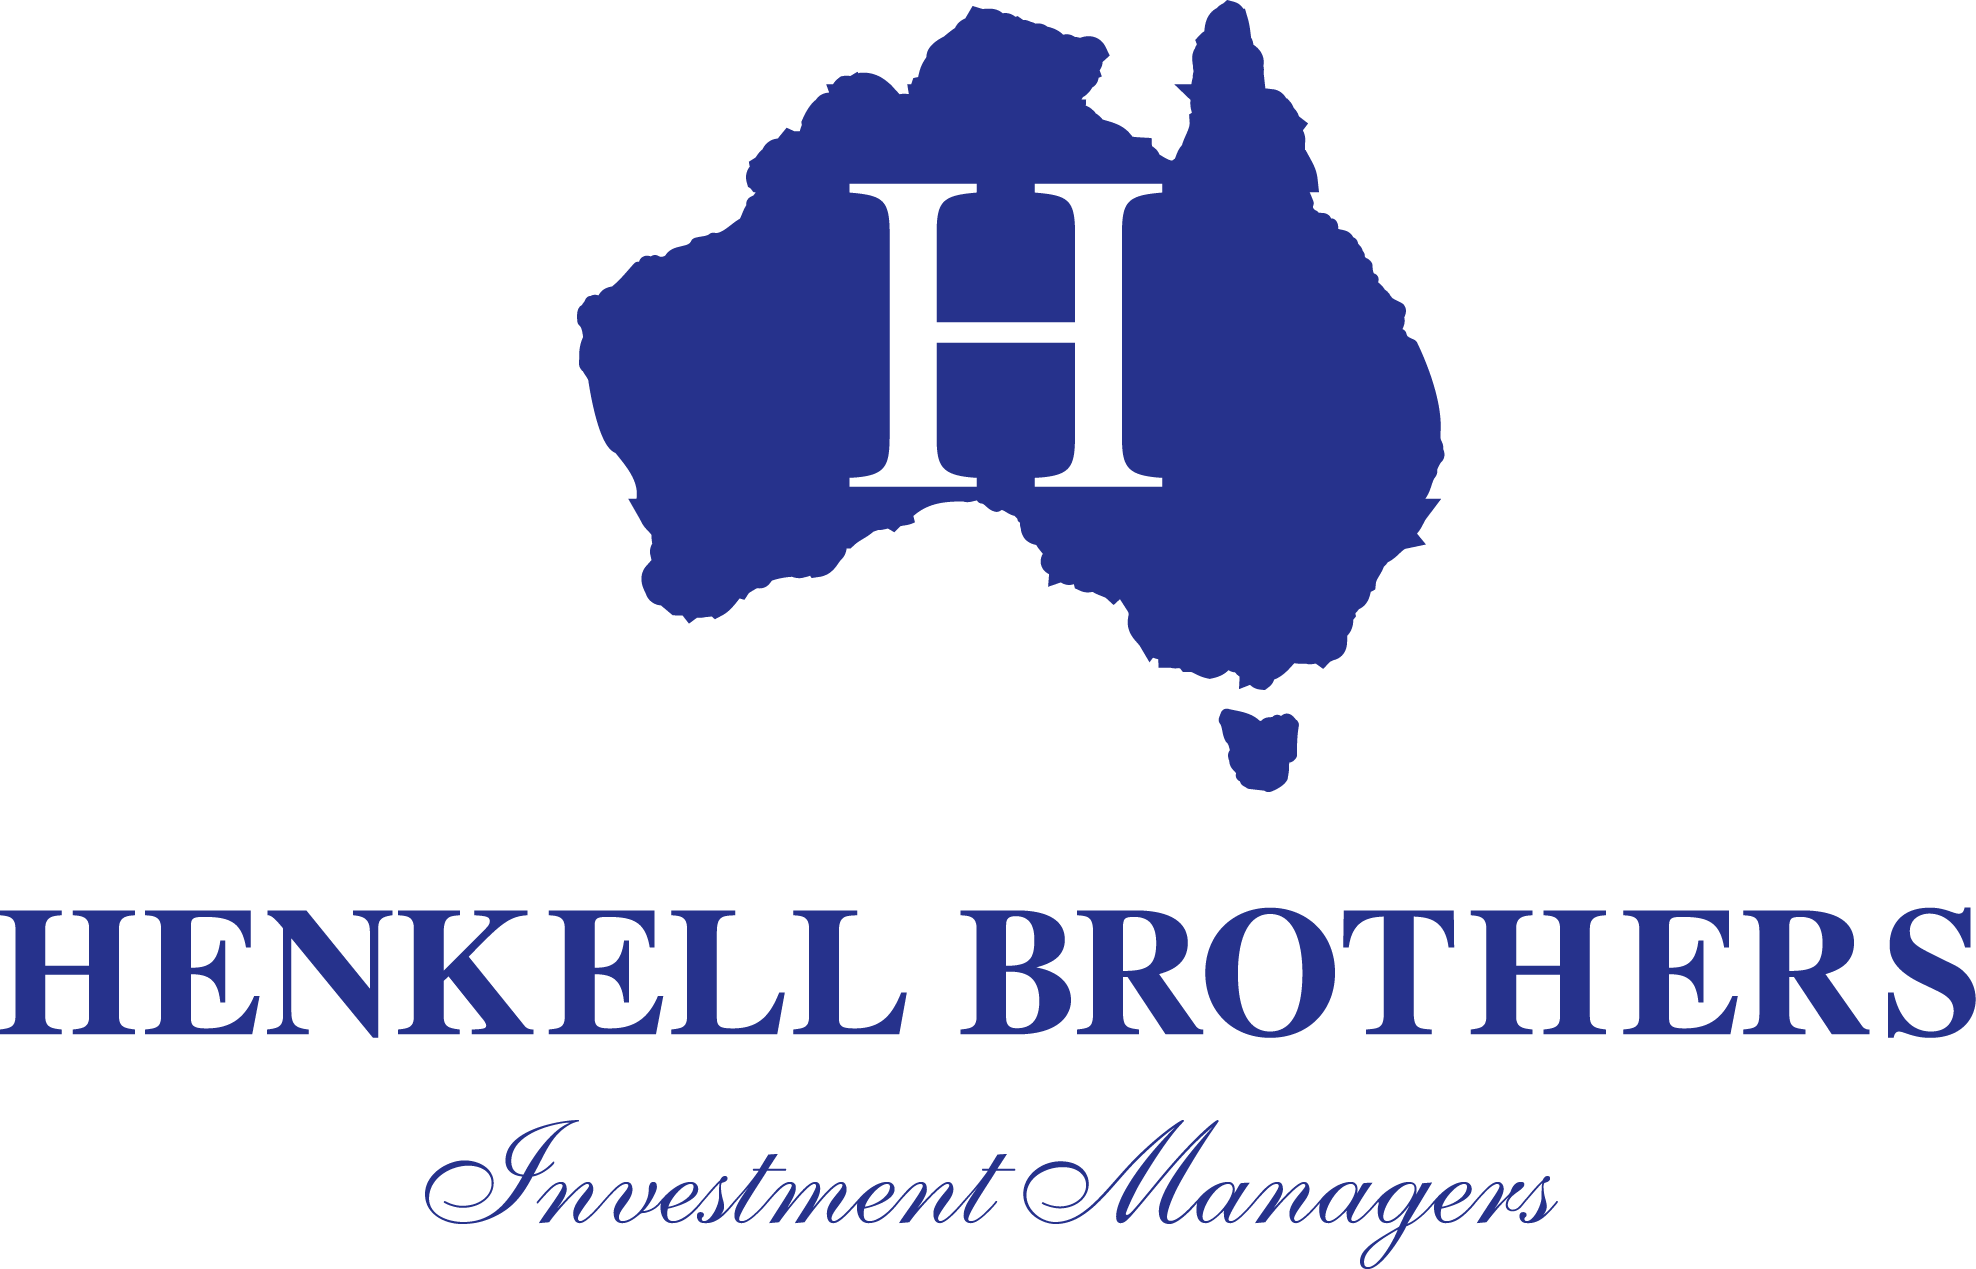 Henkell Brothers